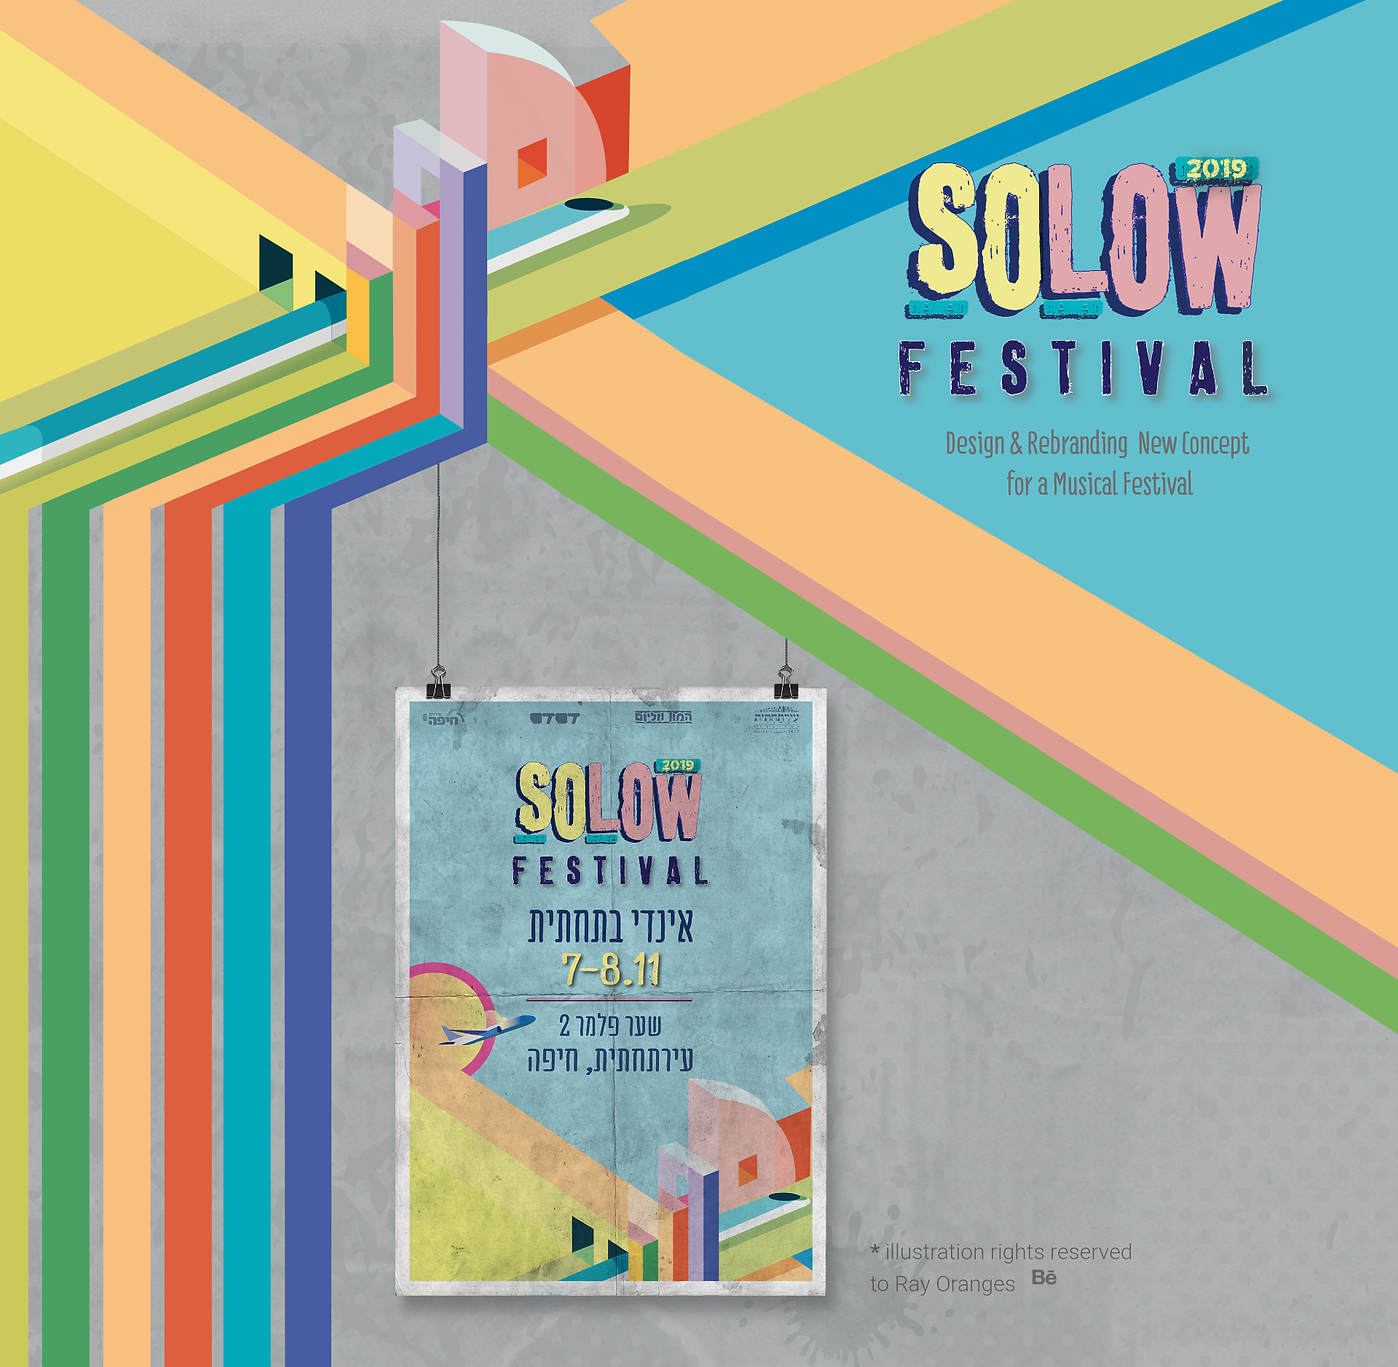 solow-final-site_01.png